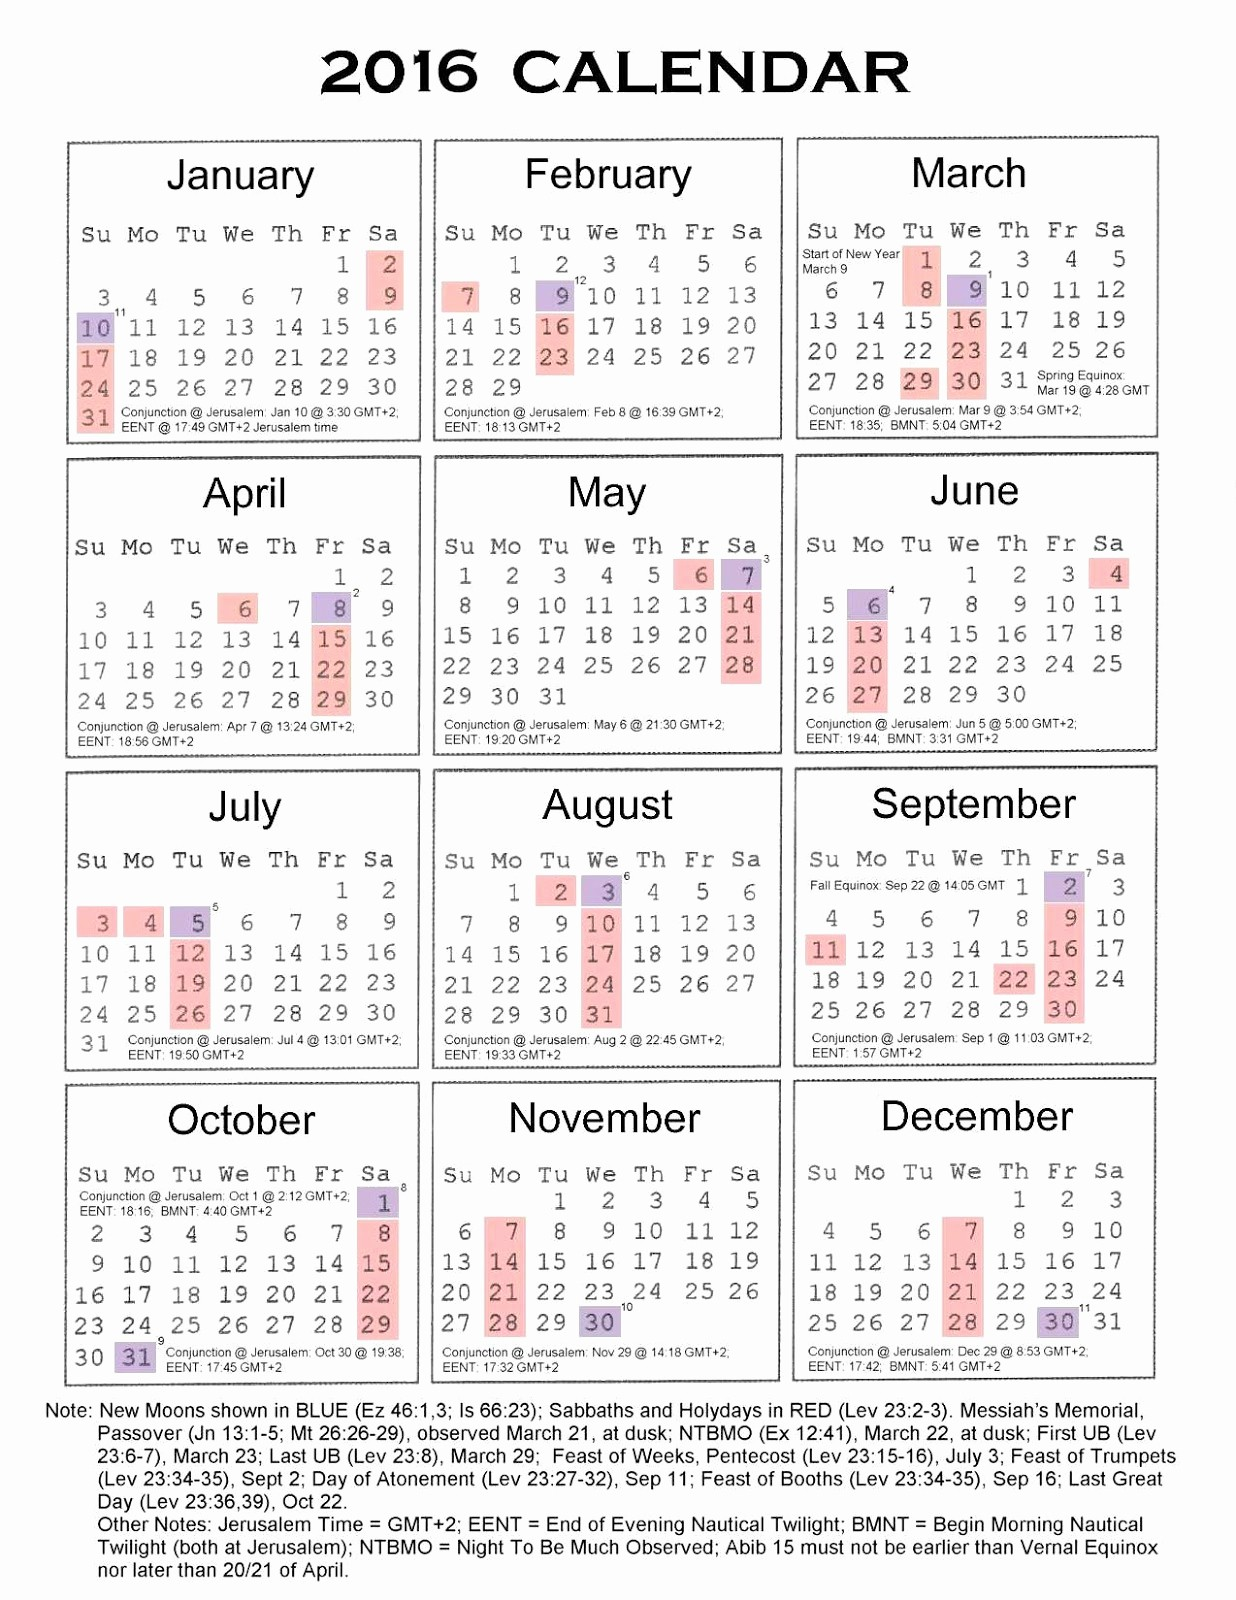 Calendar 2016 Printable with Holidays Lovely 2016 Calendar with Federal & Bank Holidays